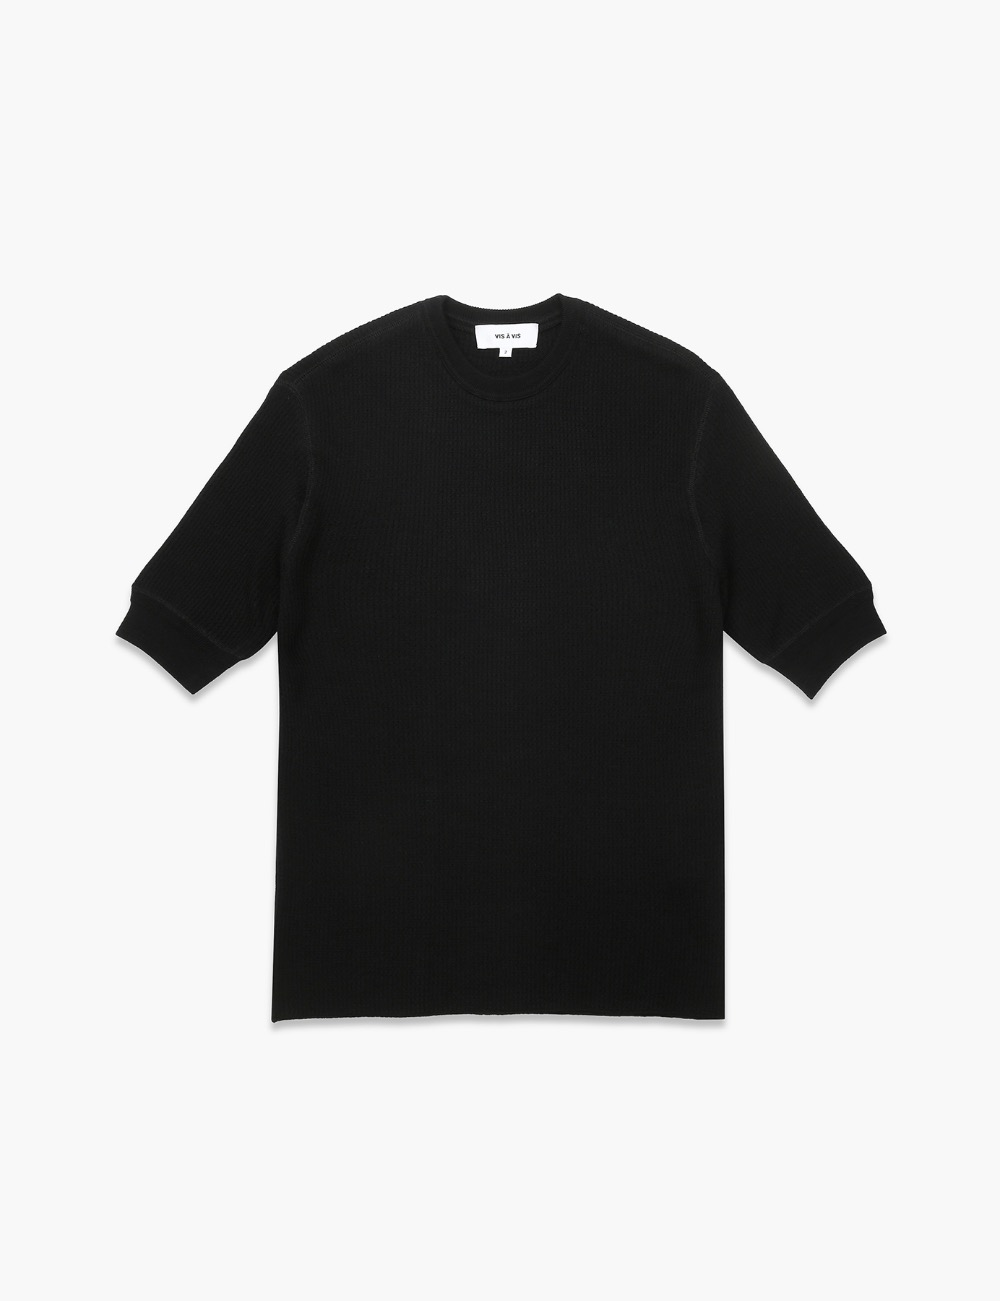 3/4 SLEEVE WOOL THERMAL TOP (BLACK)